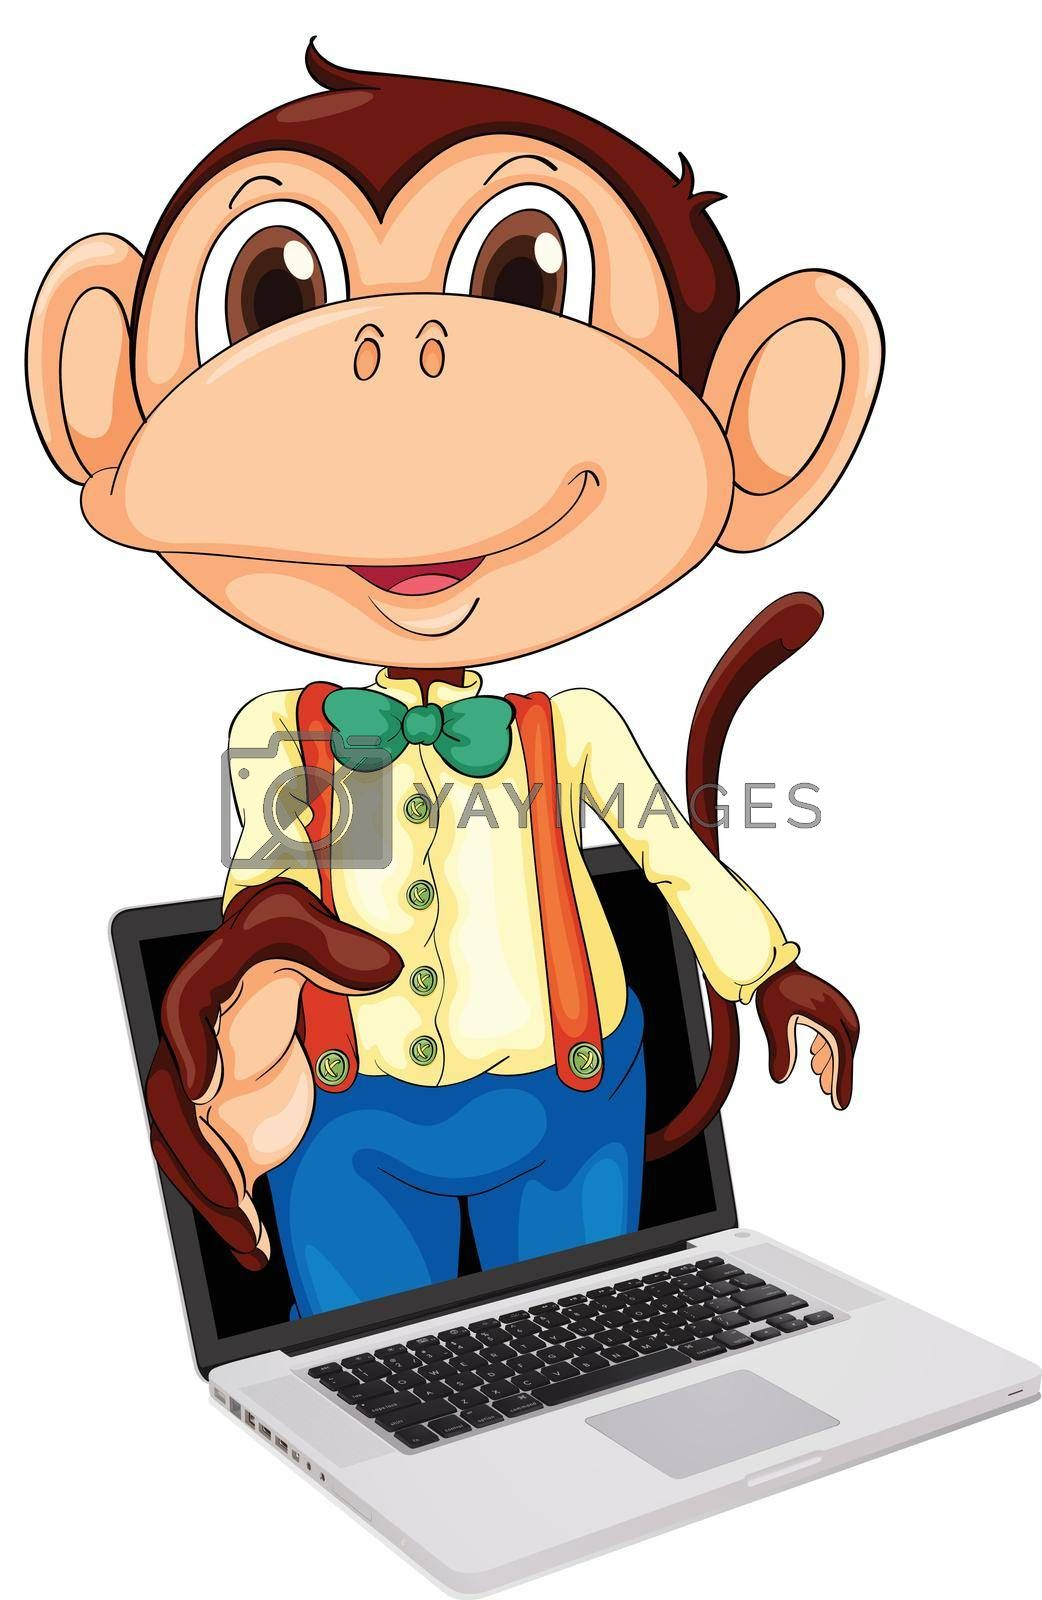 Illustration of a monkey coming out of a notebook